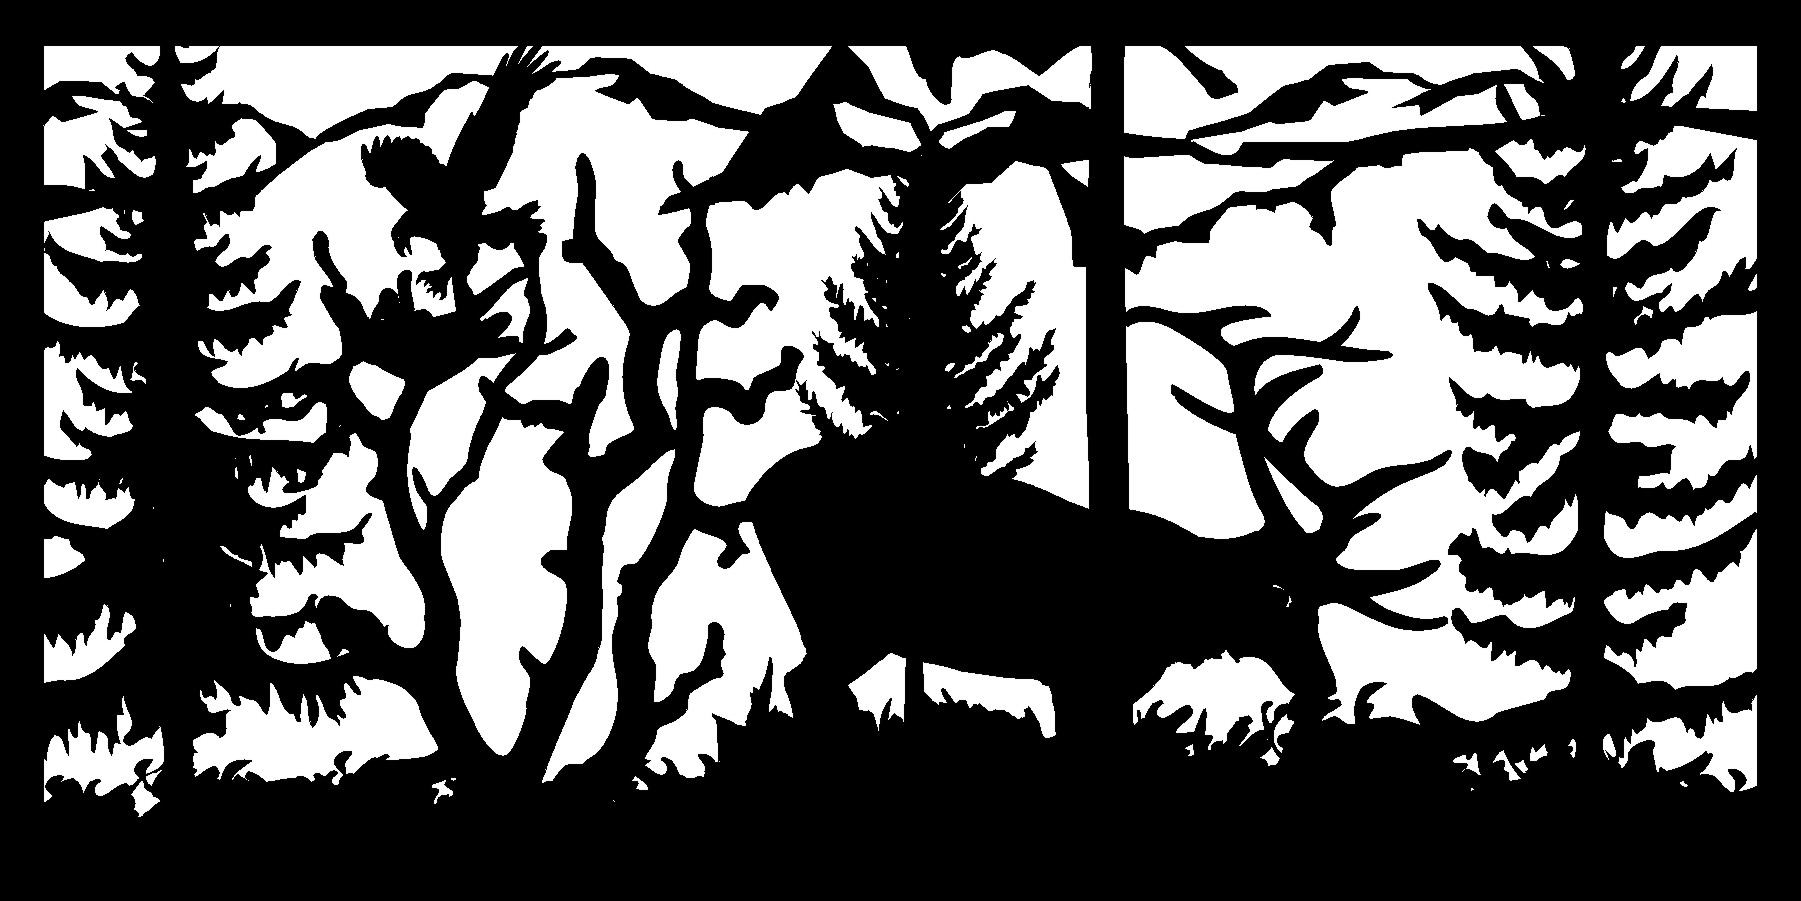 30 X 60 Elk Feeding Eagle Landing Plasma Metal Art DXF File